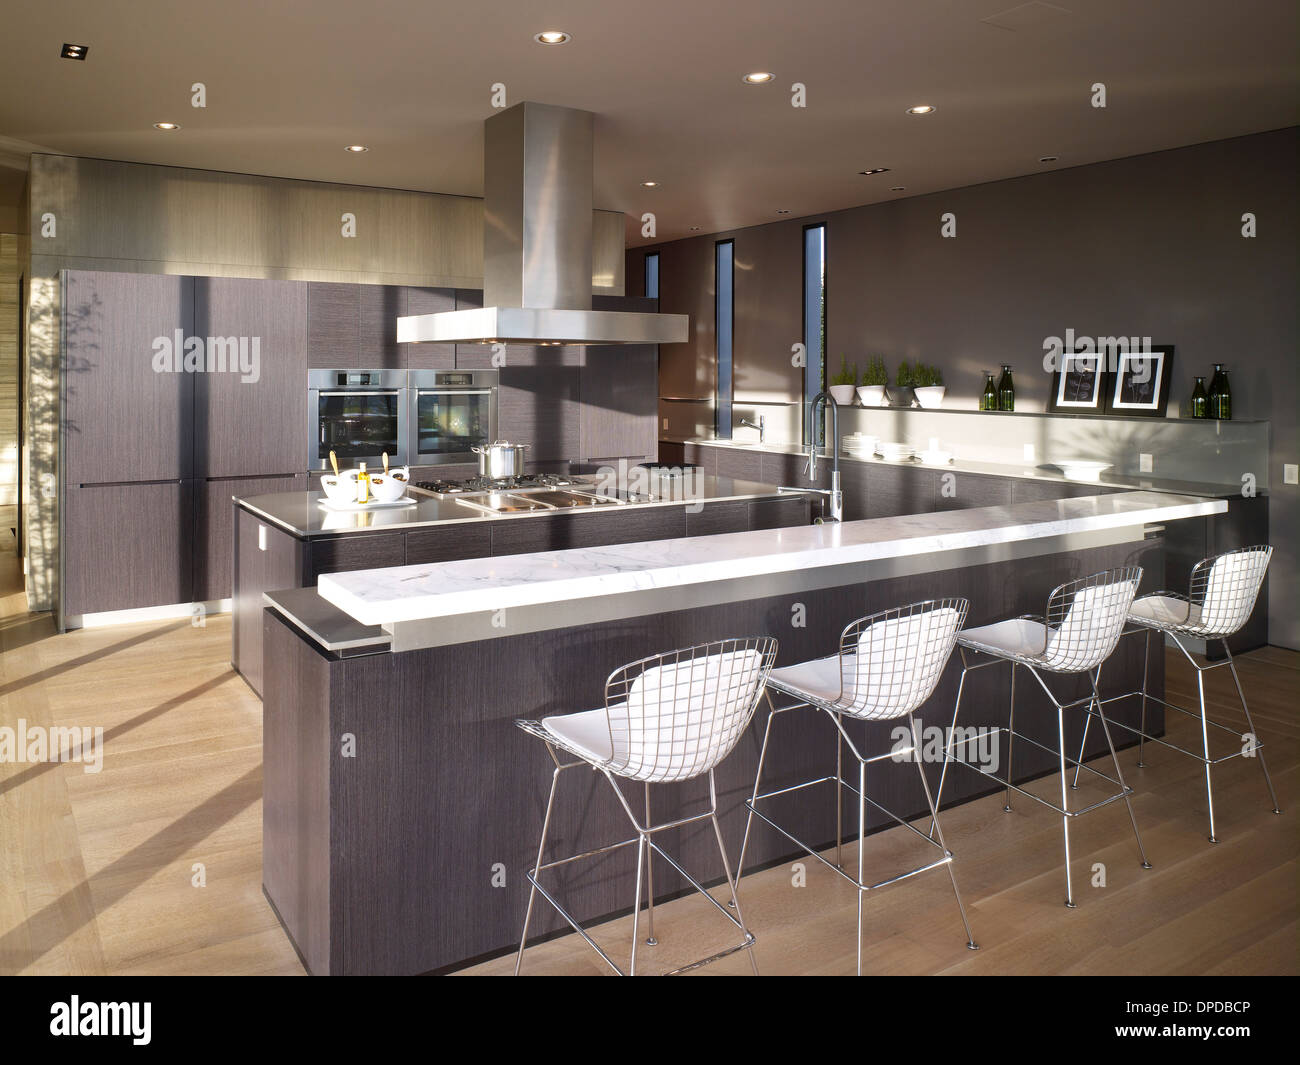 Bar Stools At Breakfast Bar In Luxury Kitchen, Nightingale 2 House,  Hollywood Hills, Hollywood, USA